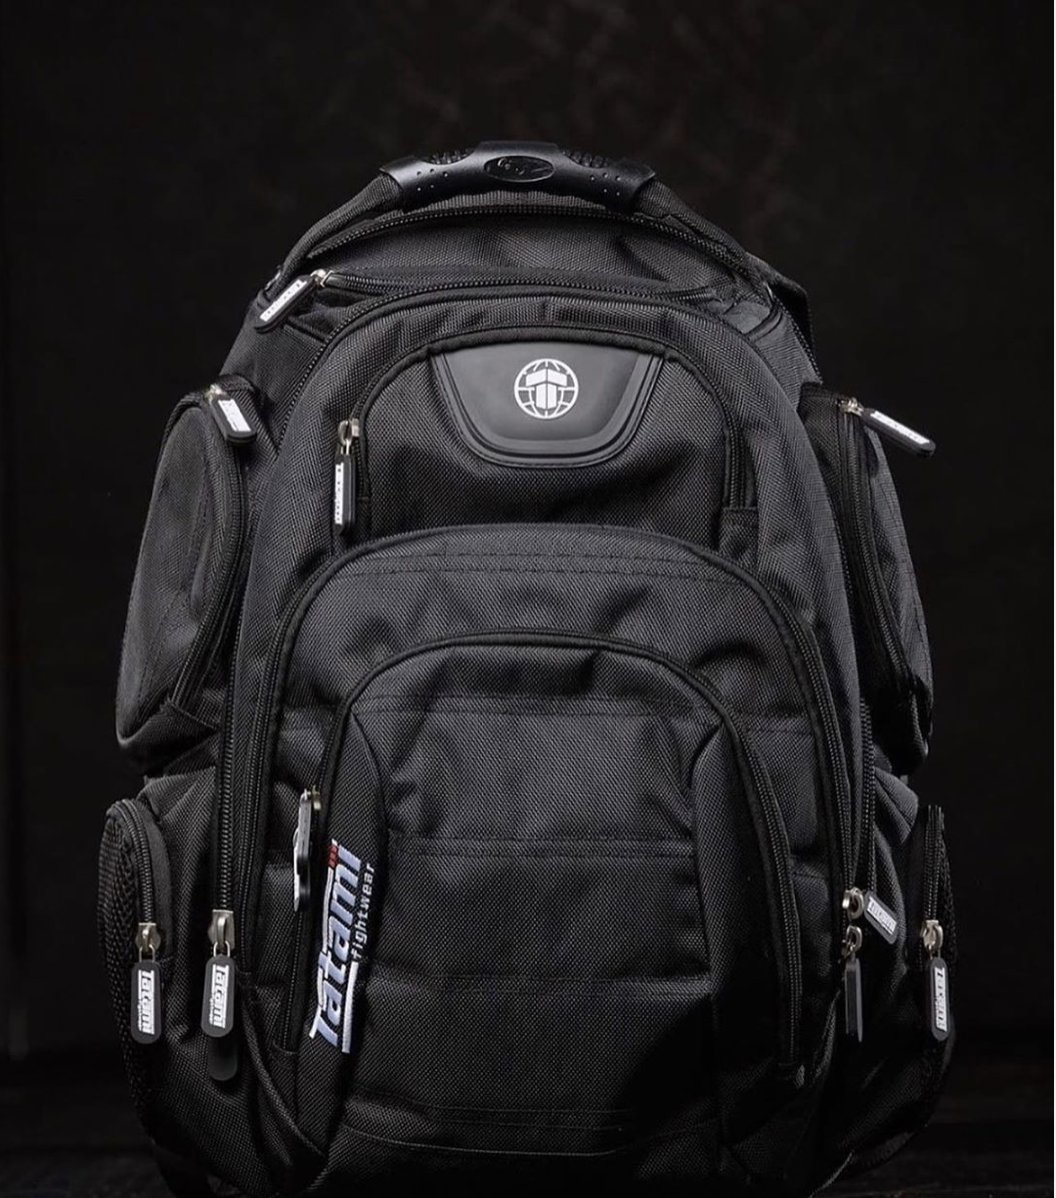 Another of our esteemed bag range, the Rogue Back Pack is now in stock and can act the ultimate every day bag for you! https://t.co/3SSjJ5qyIq https://t.co/OoWqOFzffT